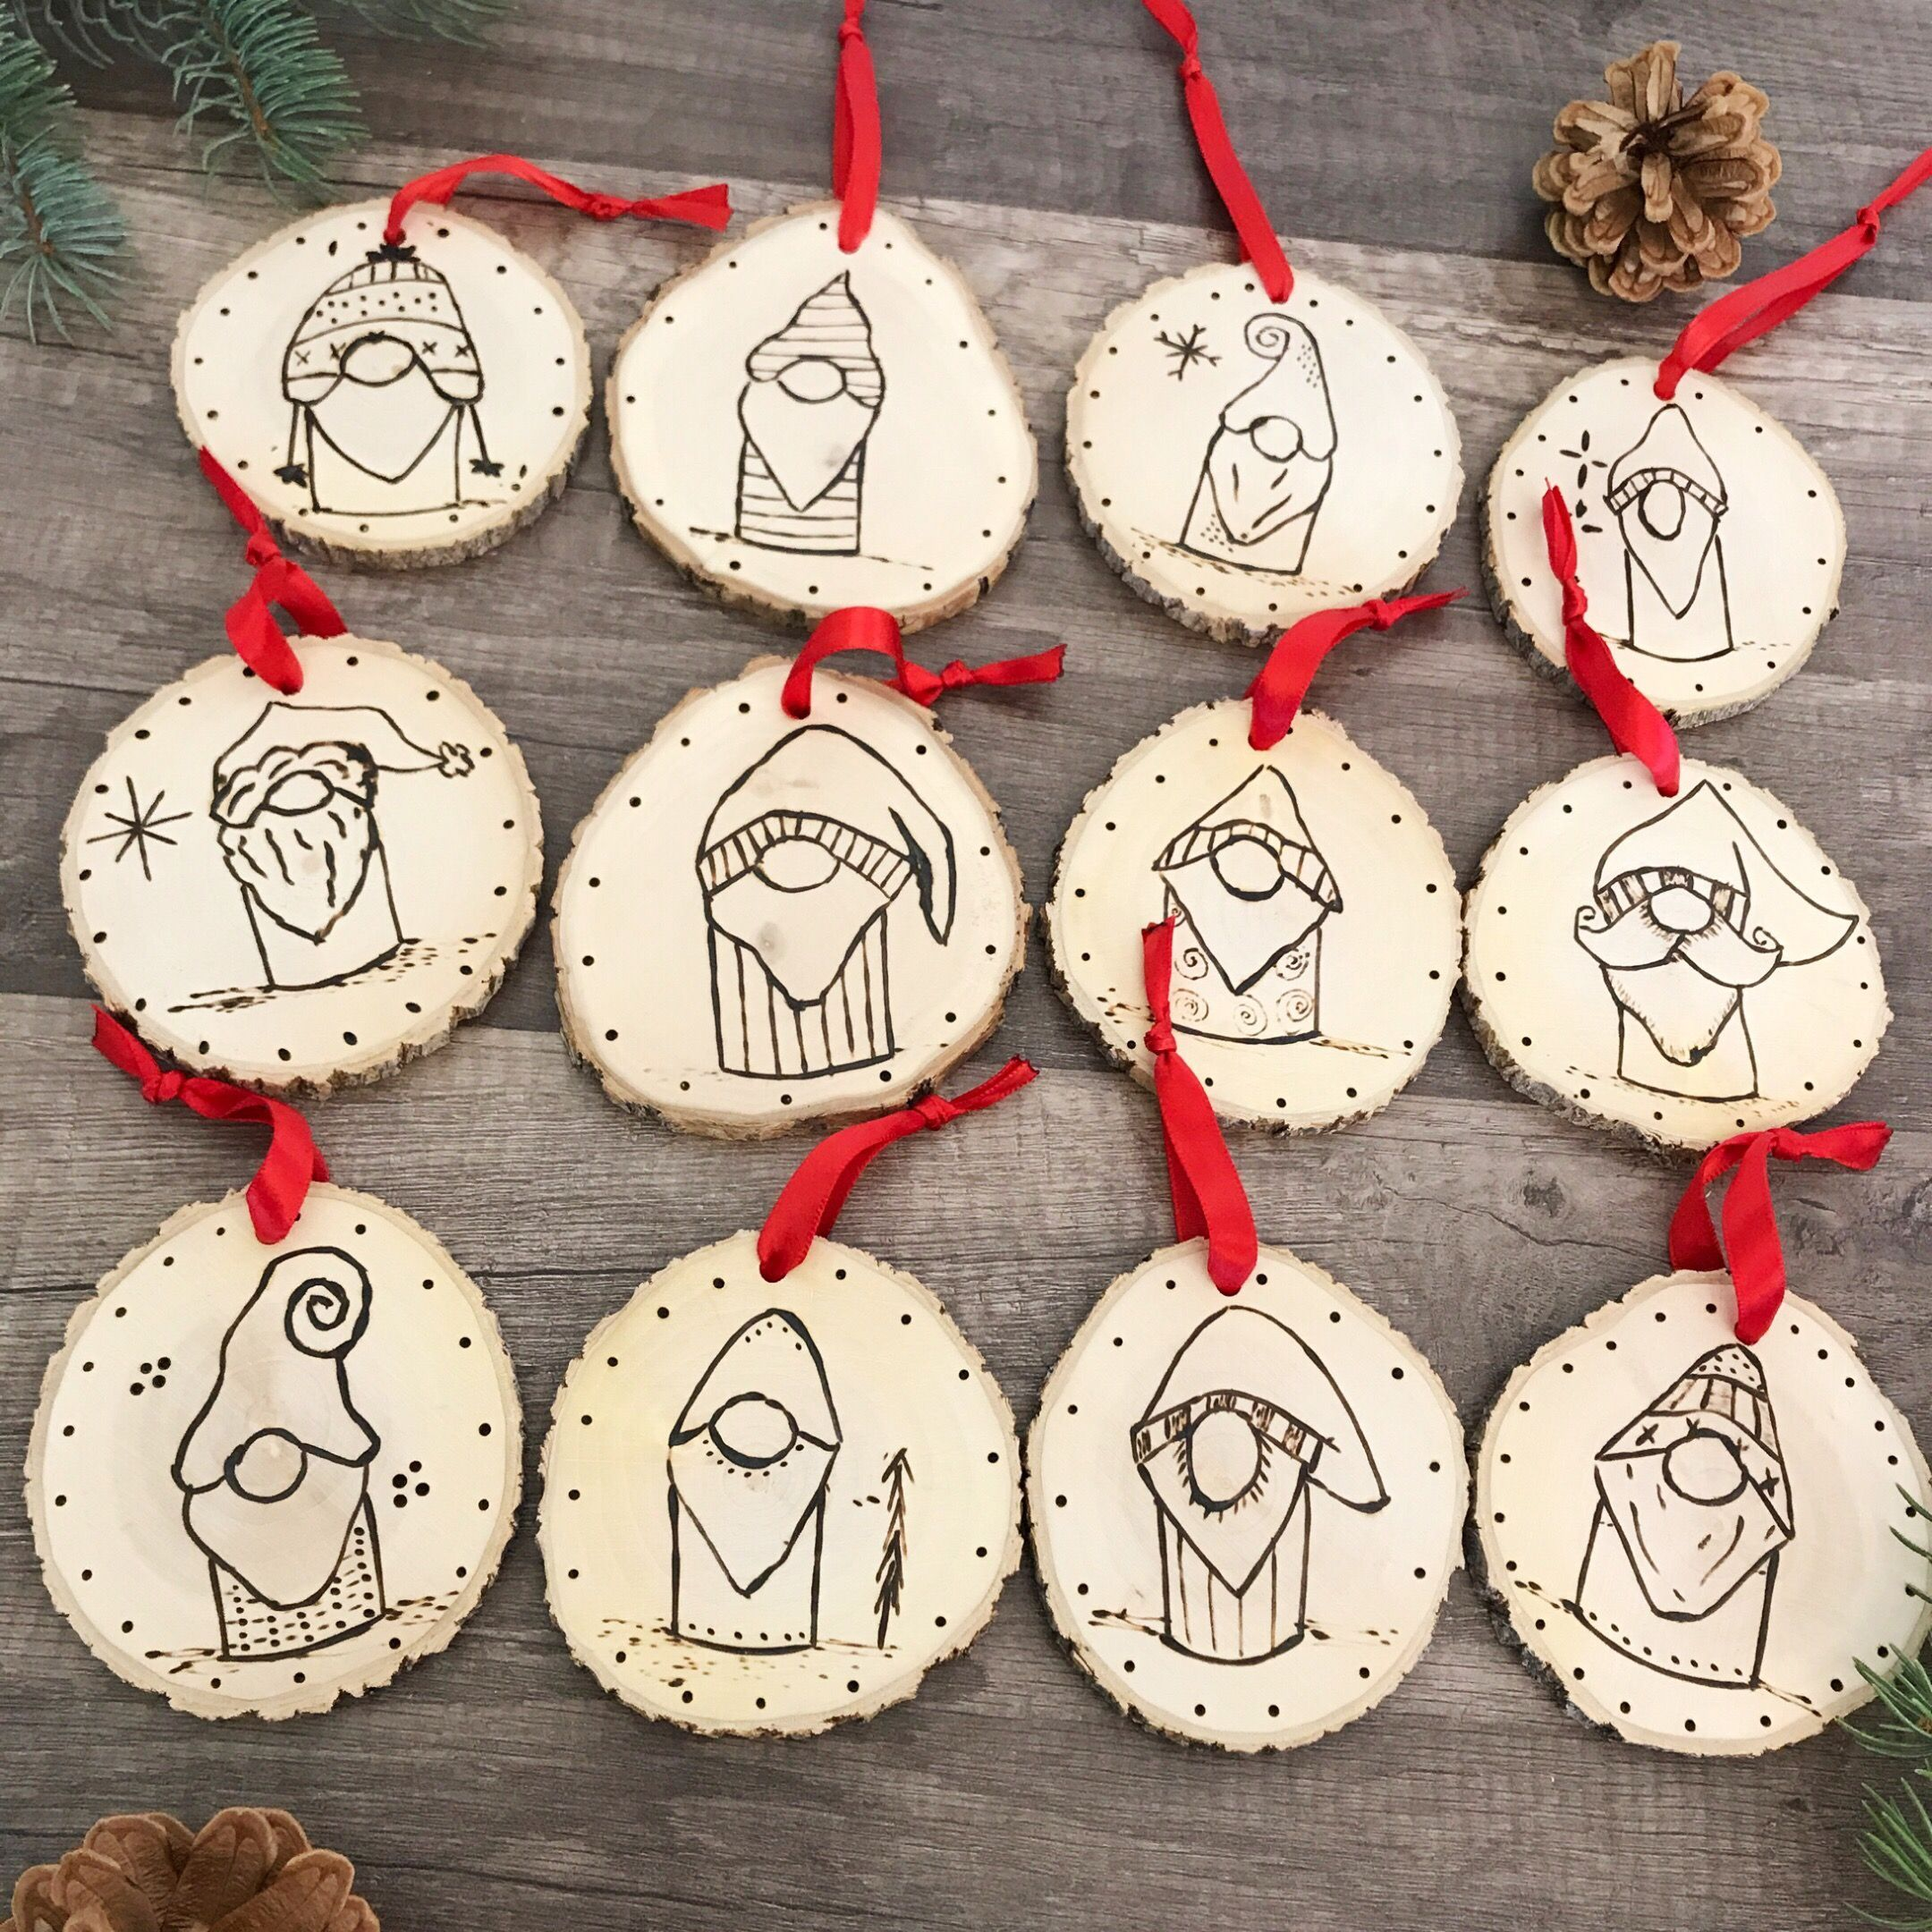 Wood Slice Gnome Ornaments Scandinavian Christmas Decor Tomte Gnome Ornaments Hand Burned Wood Slice Ornament Wood Christmas Ornaments Handmade Ornaments